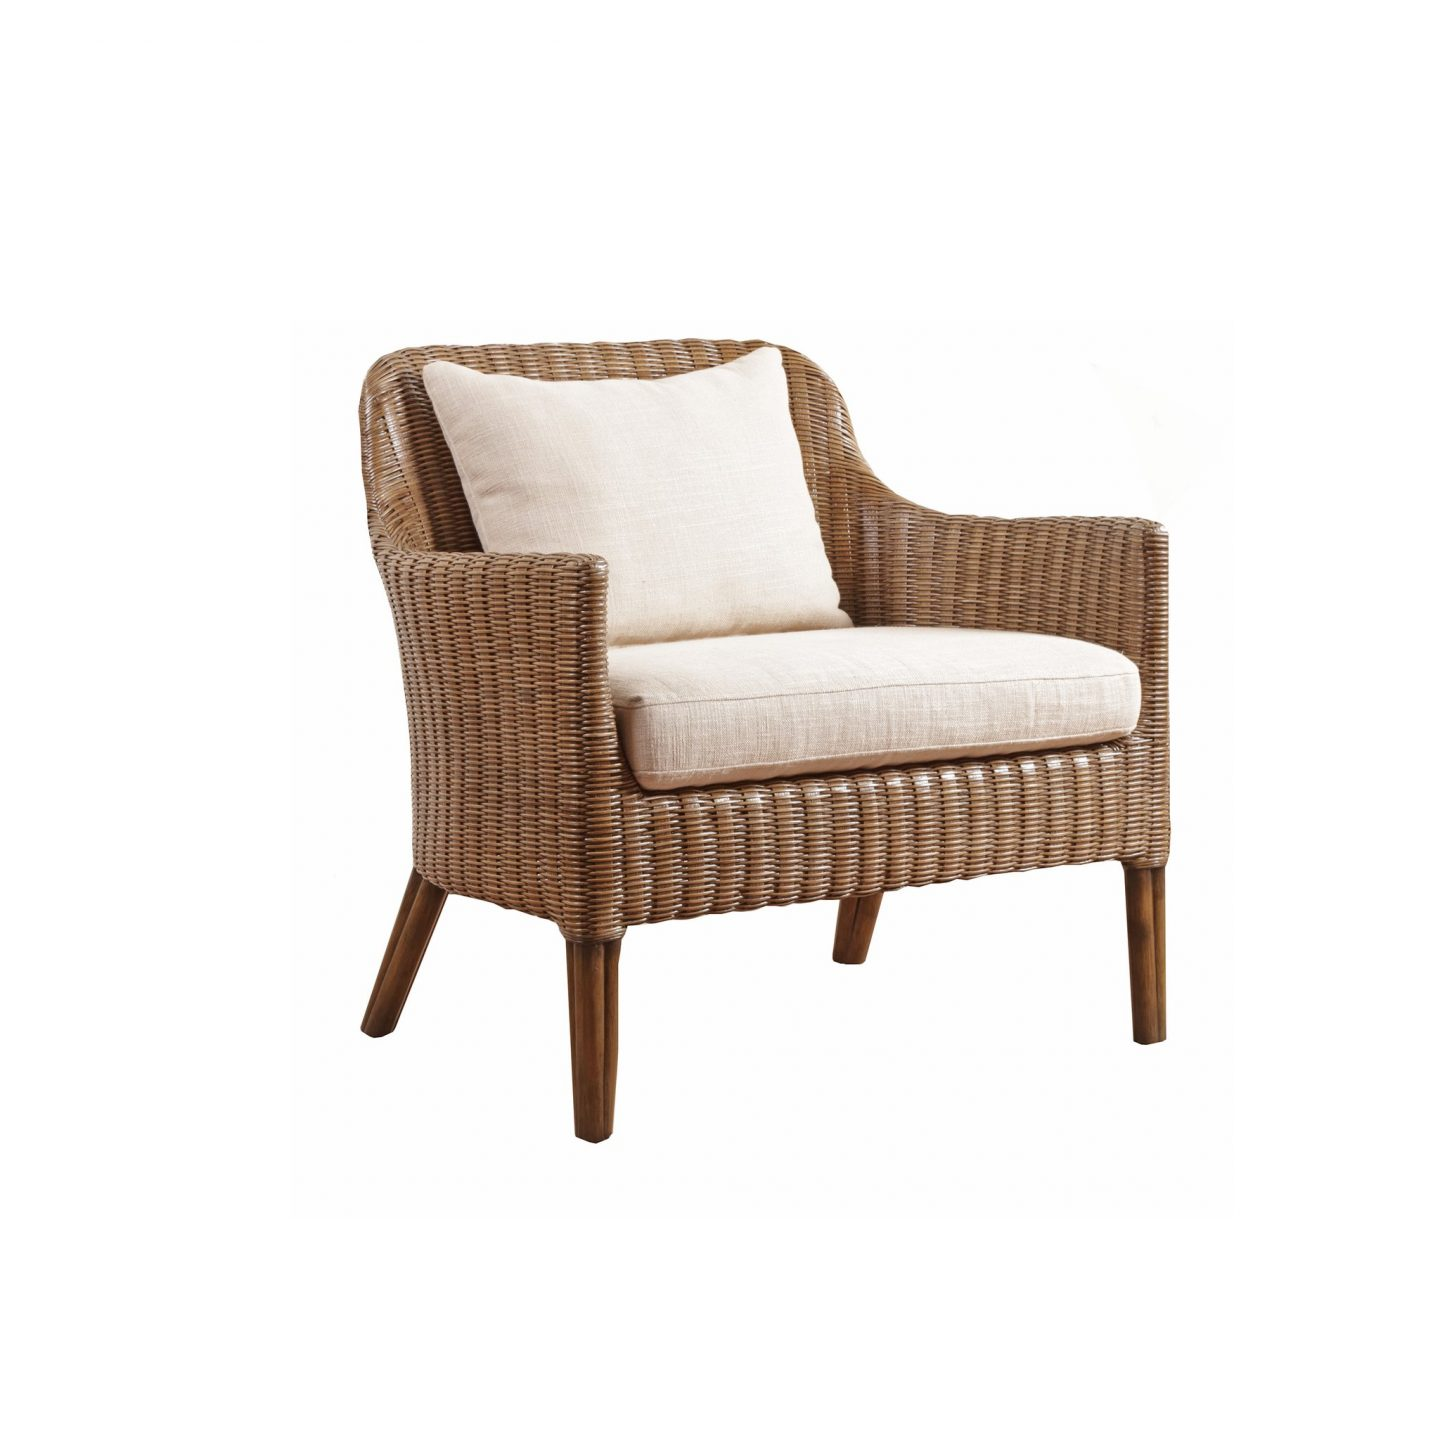 Chronograph Wicker Accent Chair - Curate Home Collection